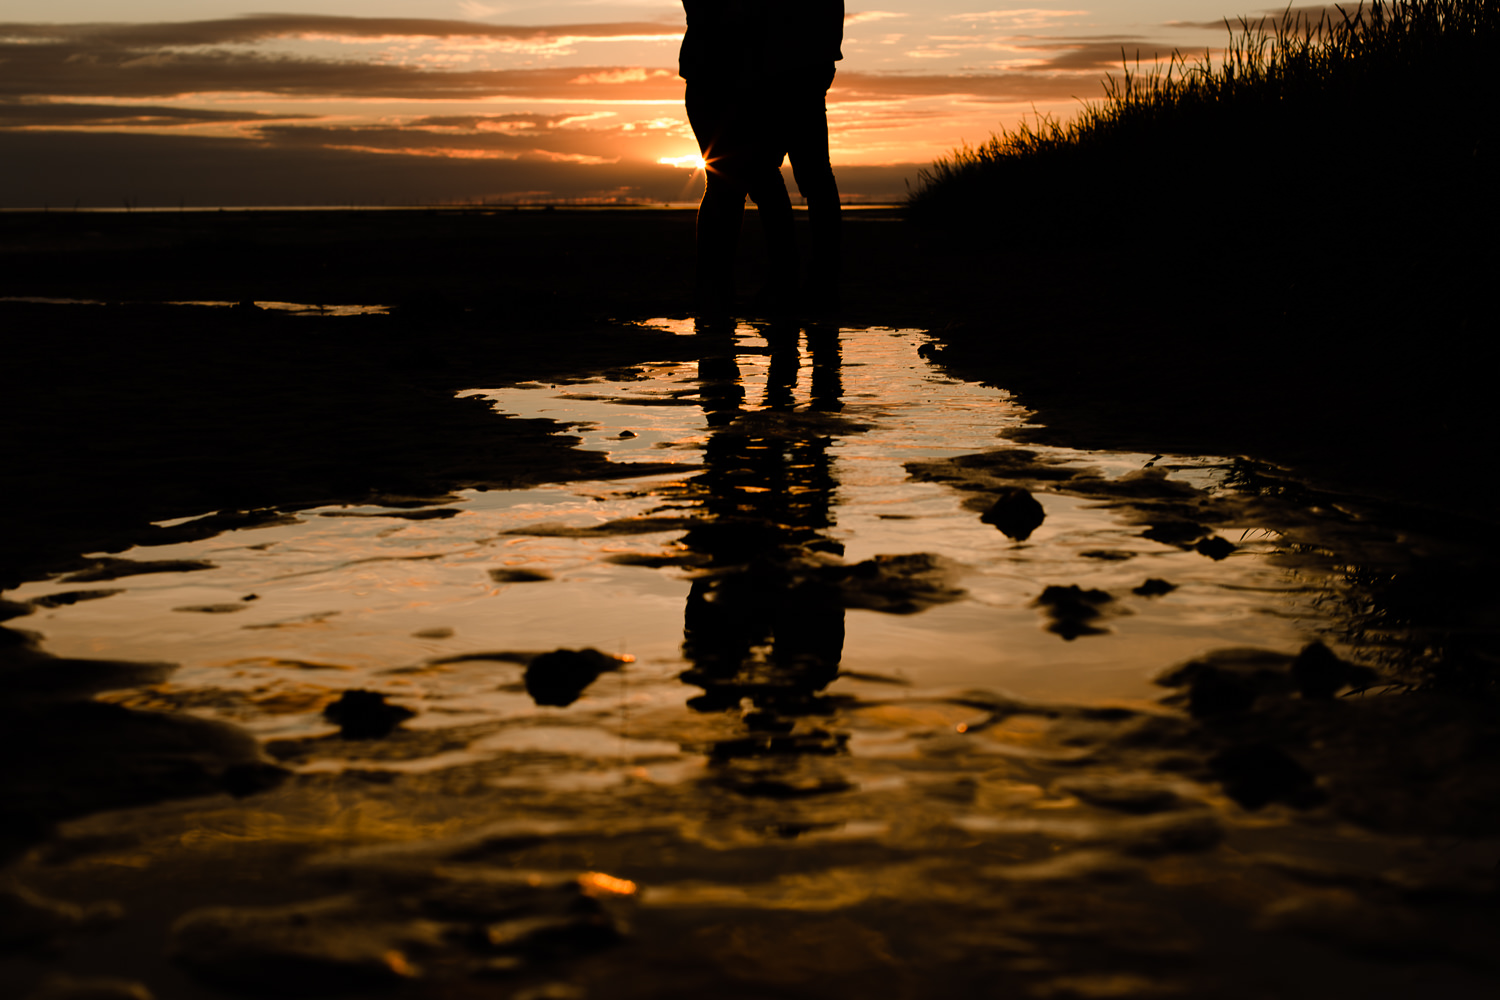 Silhouette and reflection of a couple on a wet beach - Wirral Country Park, Merseyside, Pre Wedding Shoot at Sunset